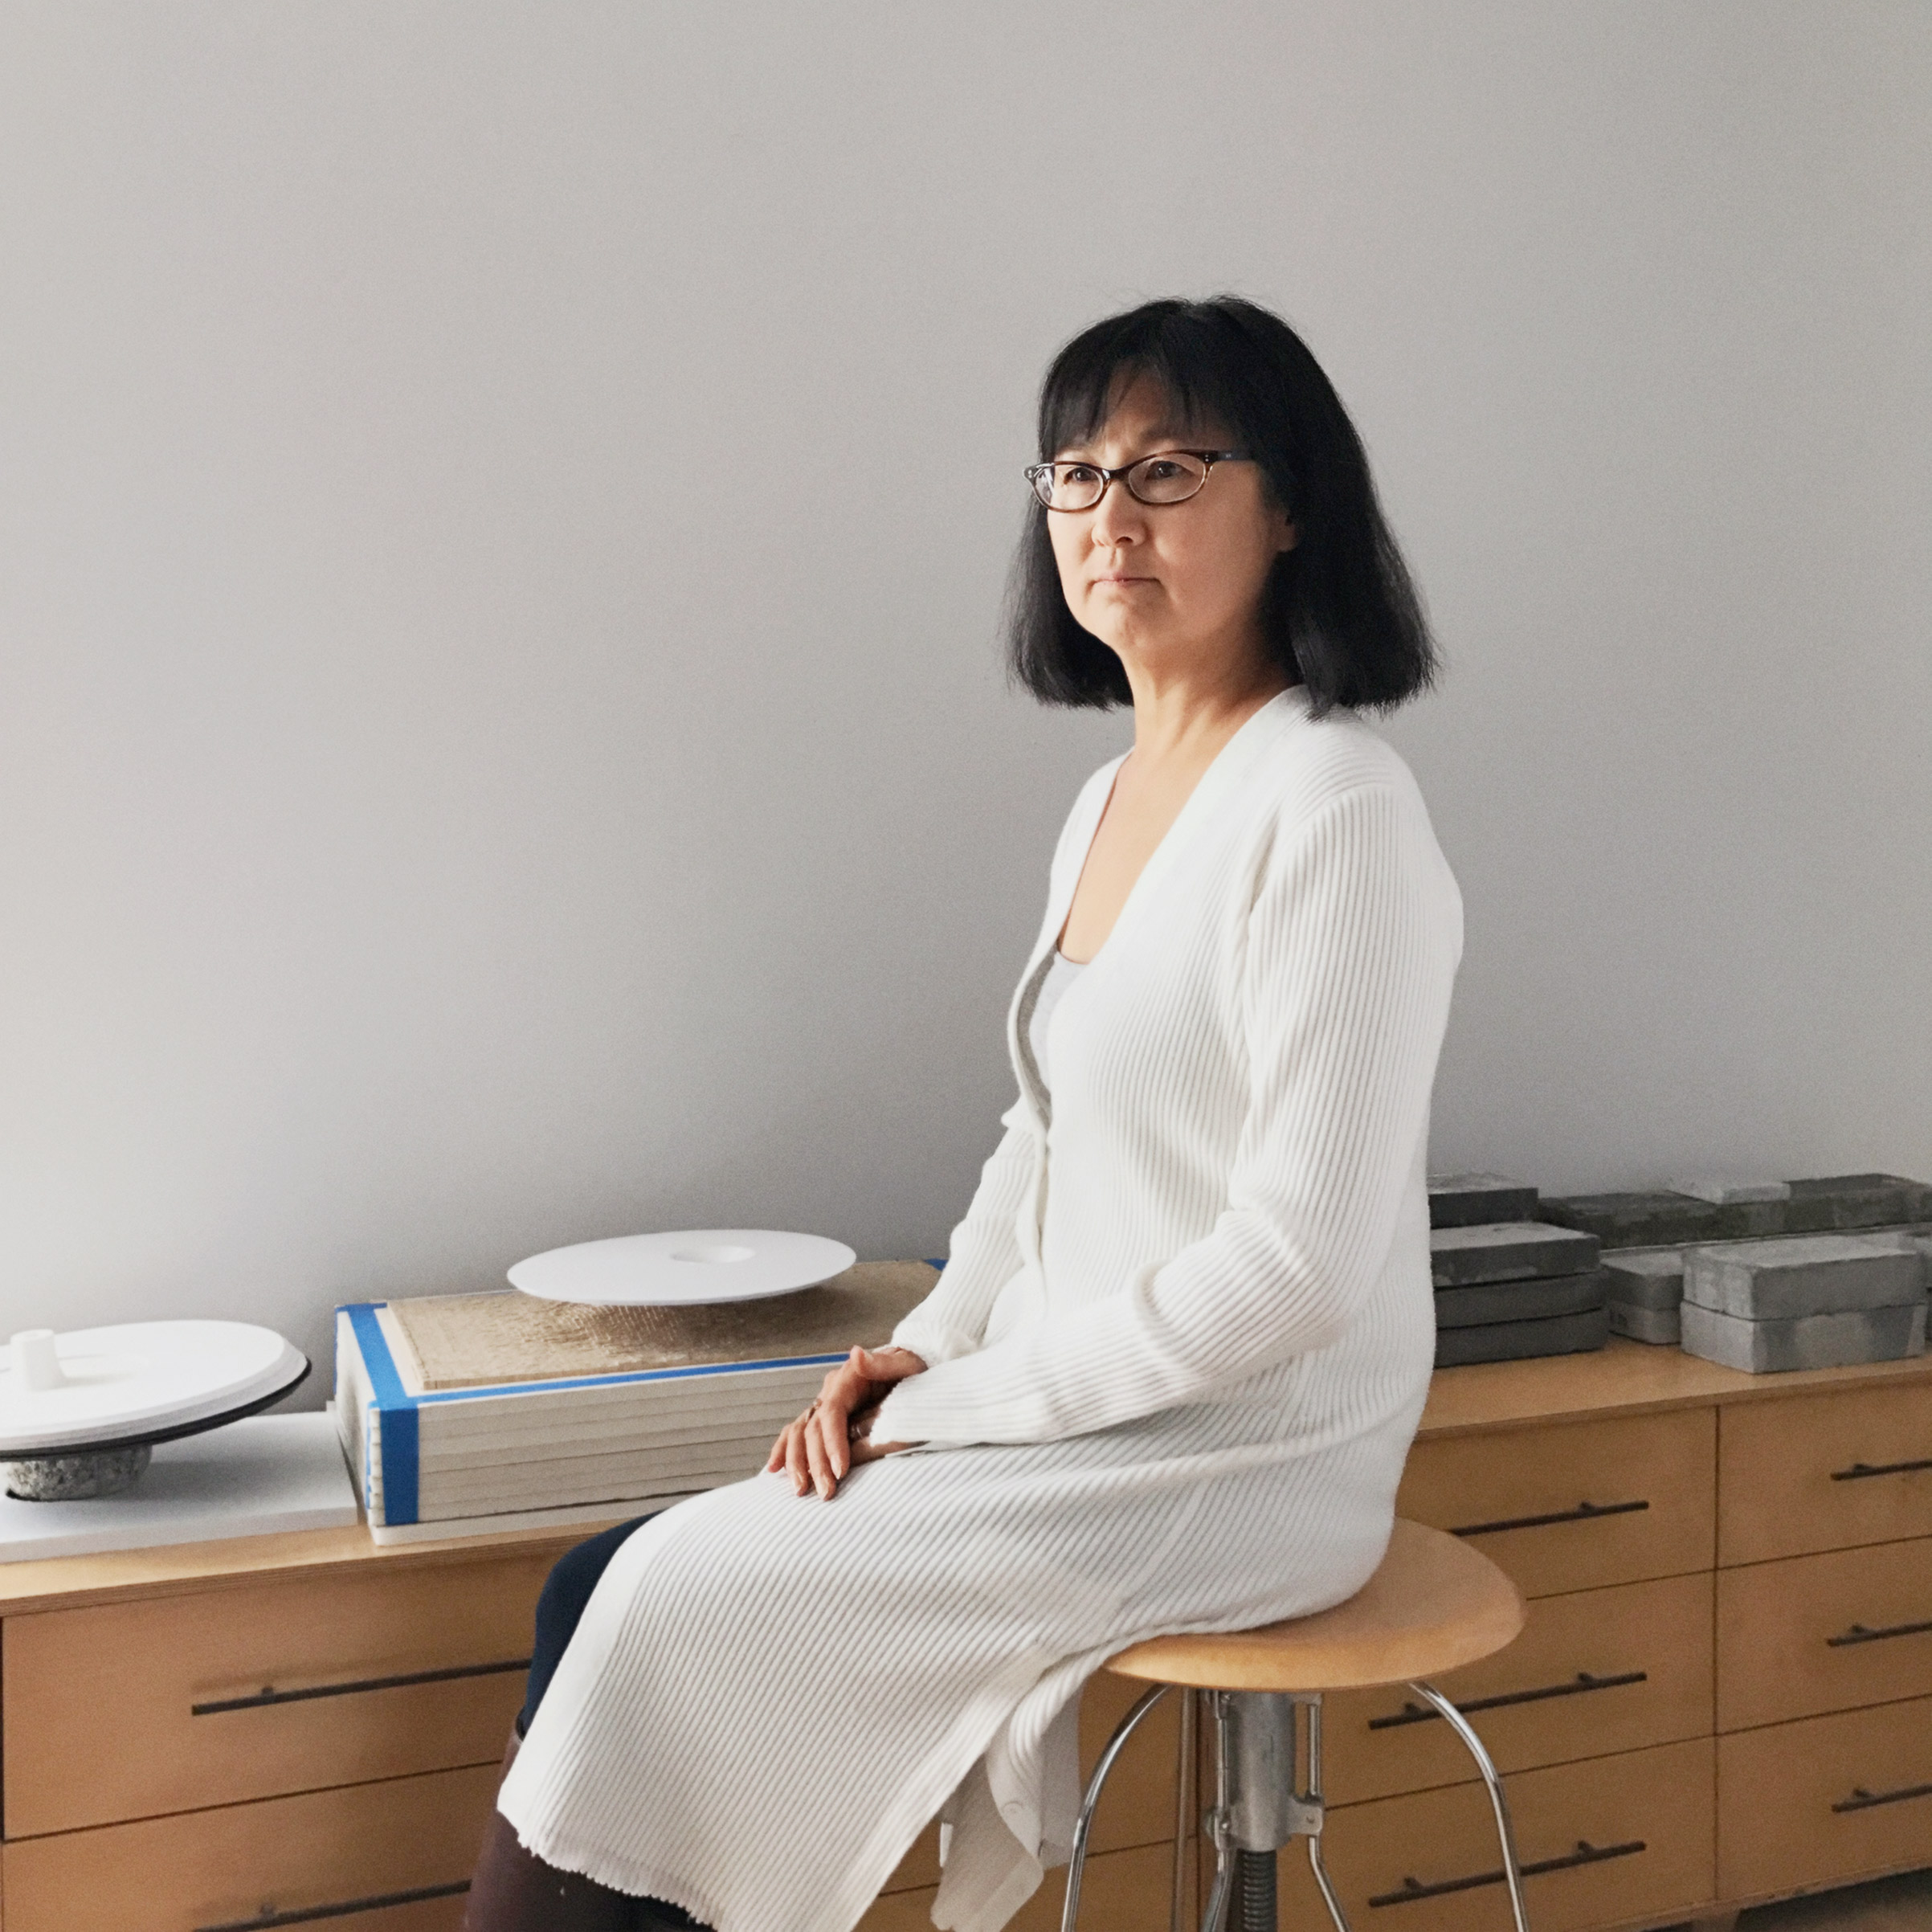 maya_lin__luisa_dorr_time_firsts_2017.jpg